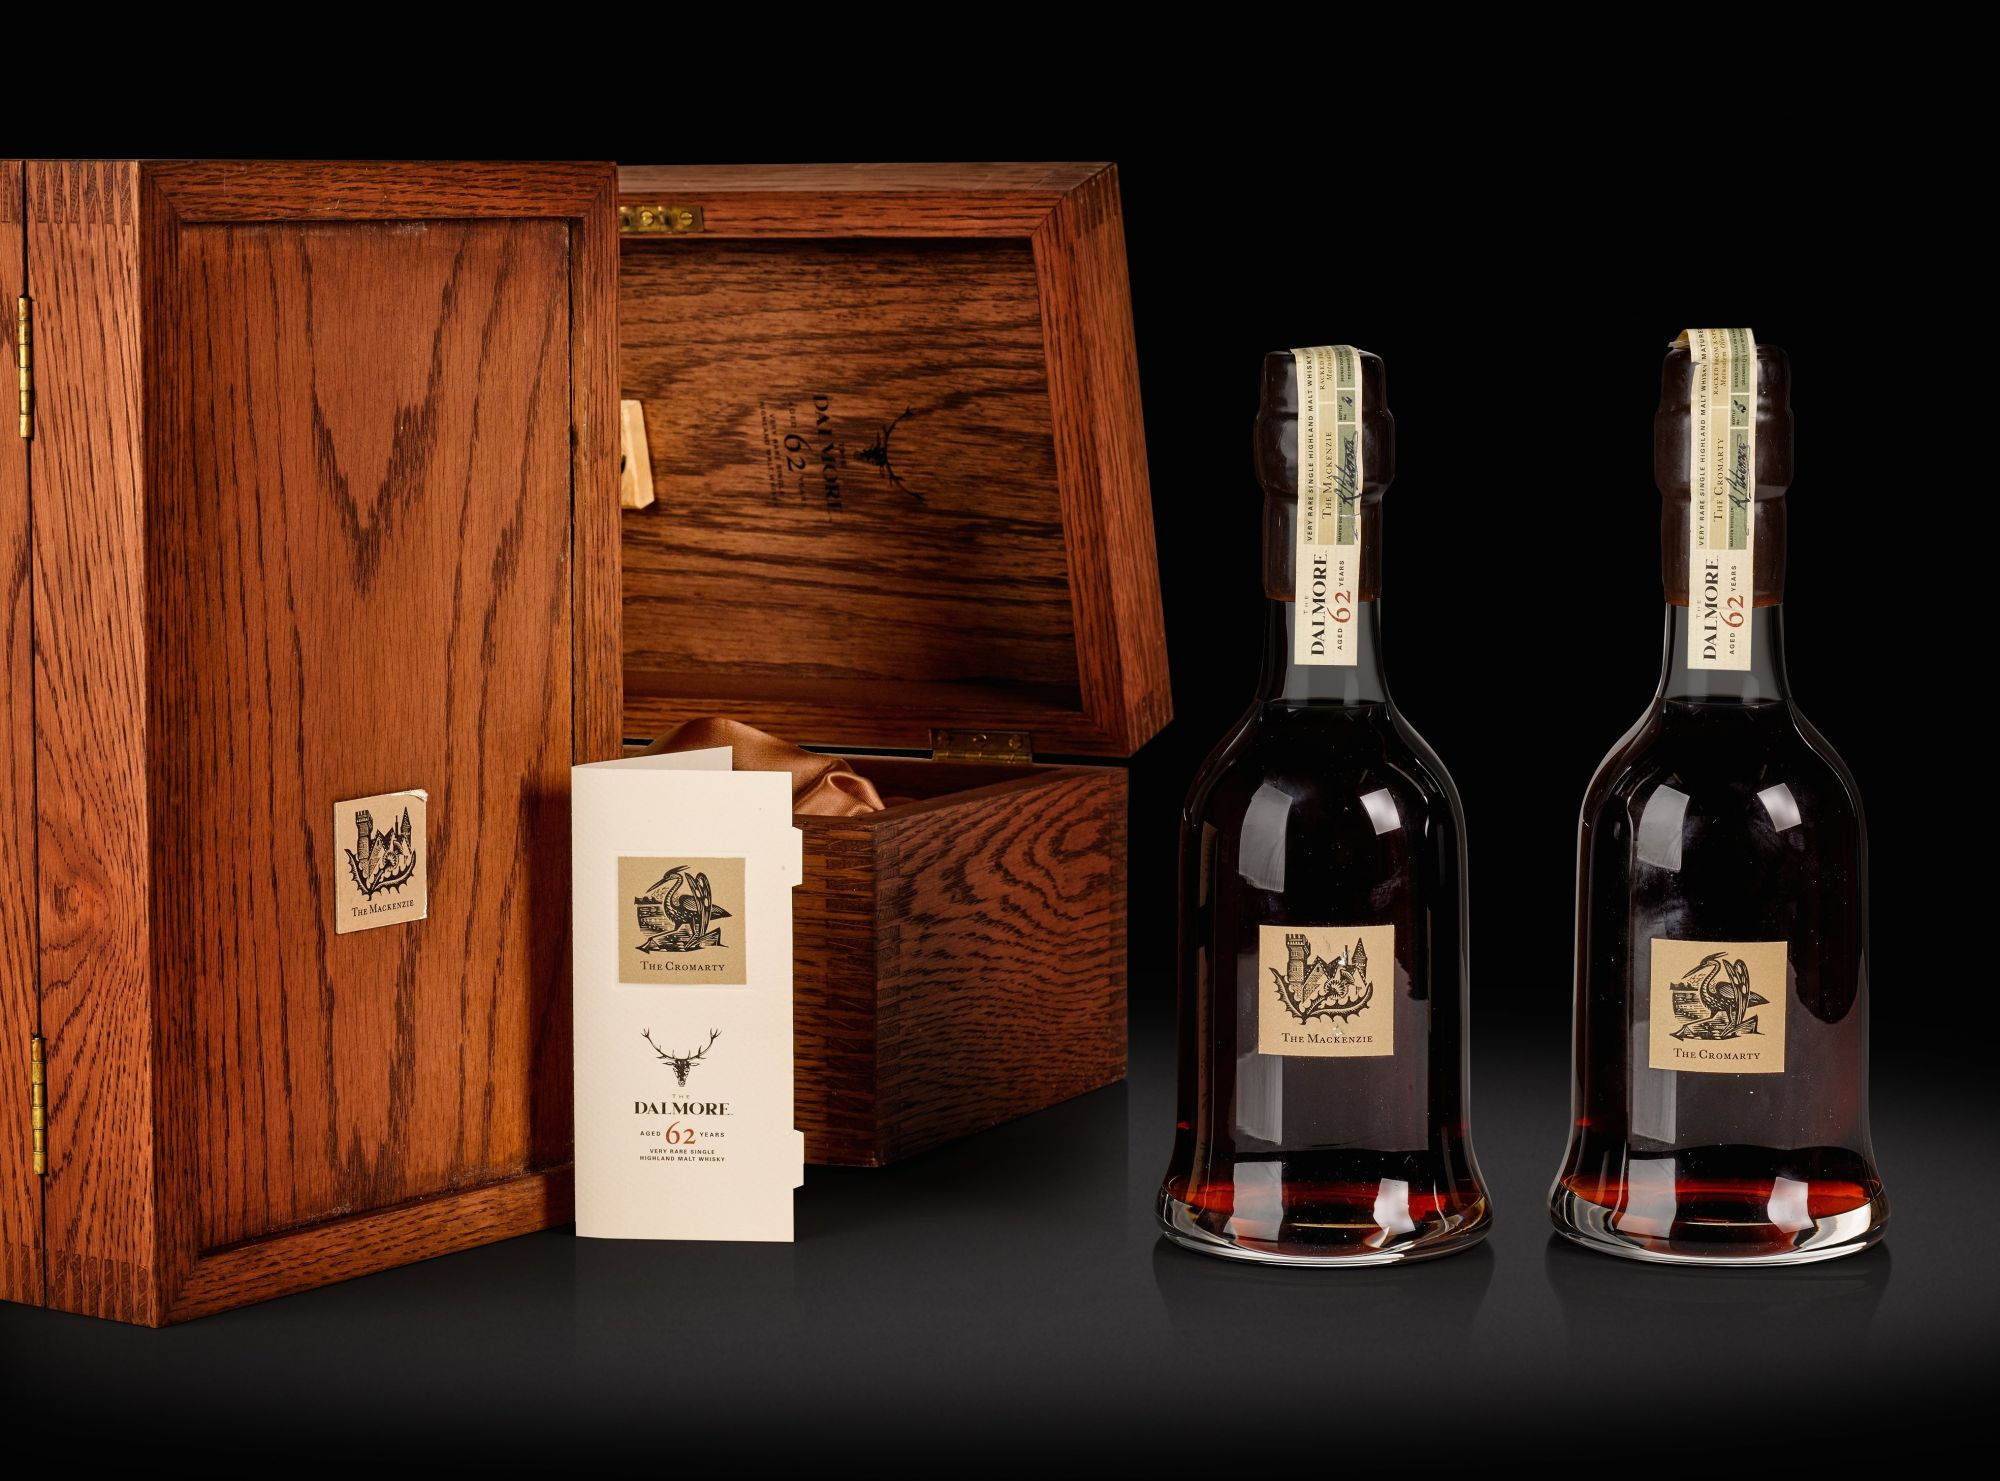 Rare Dalmore 62 Sold For £266,200 At Auction